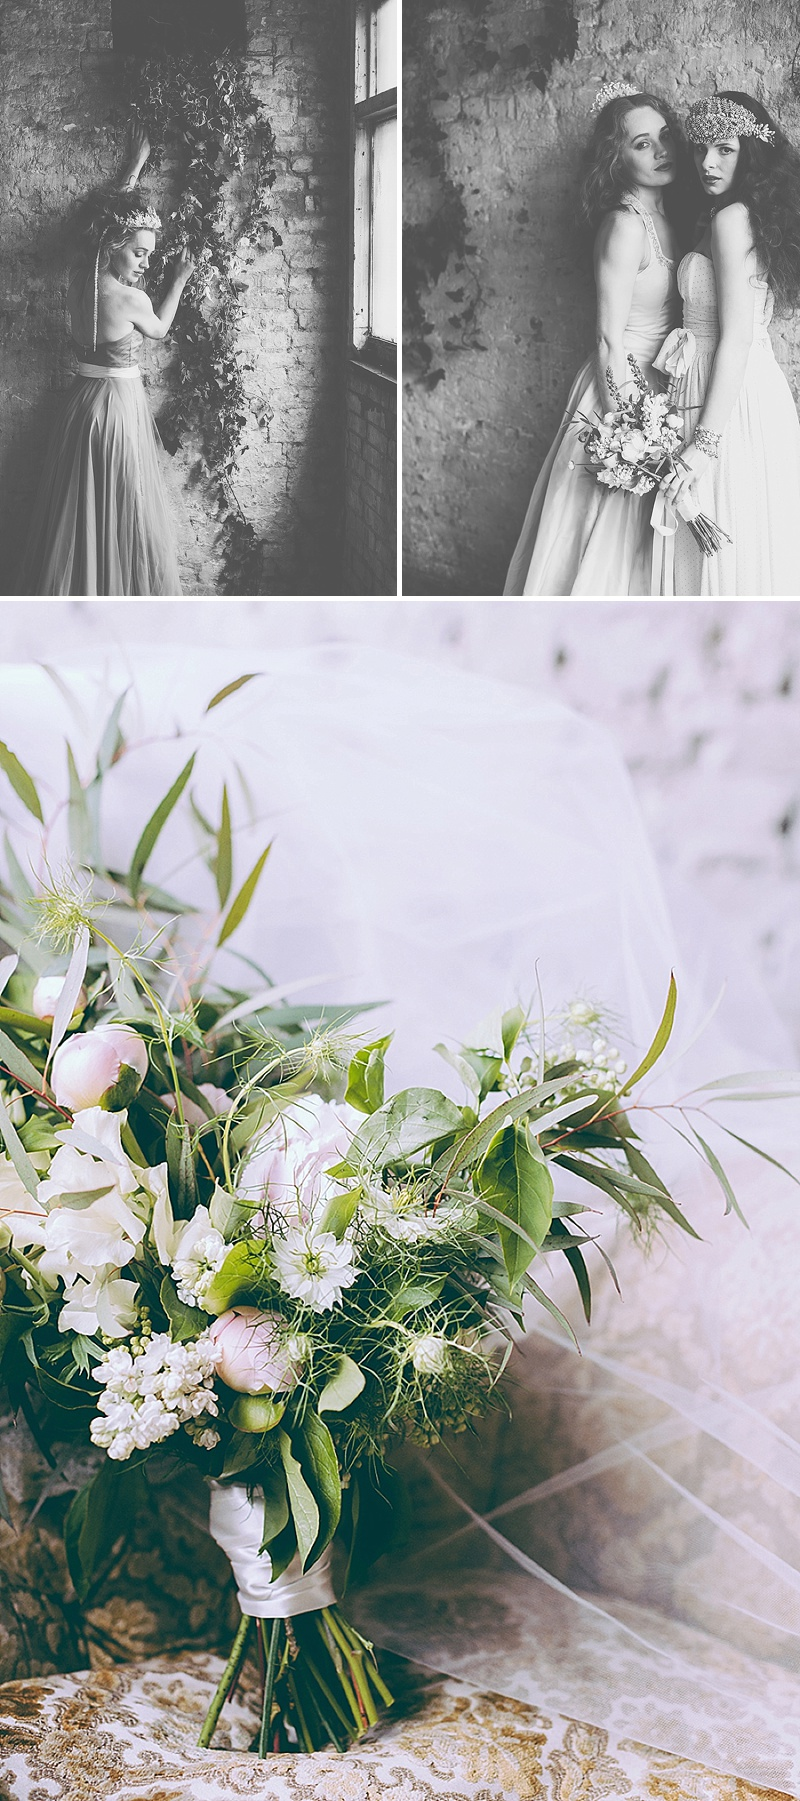 Rustic And Romantic Fairytale Bridal Inspiration Shoot With Gowns From Faith Caton-Barber And Accessories From Rosie Weisencrantz With Images By Miss Gen Photography 10